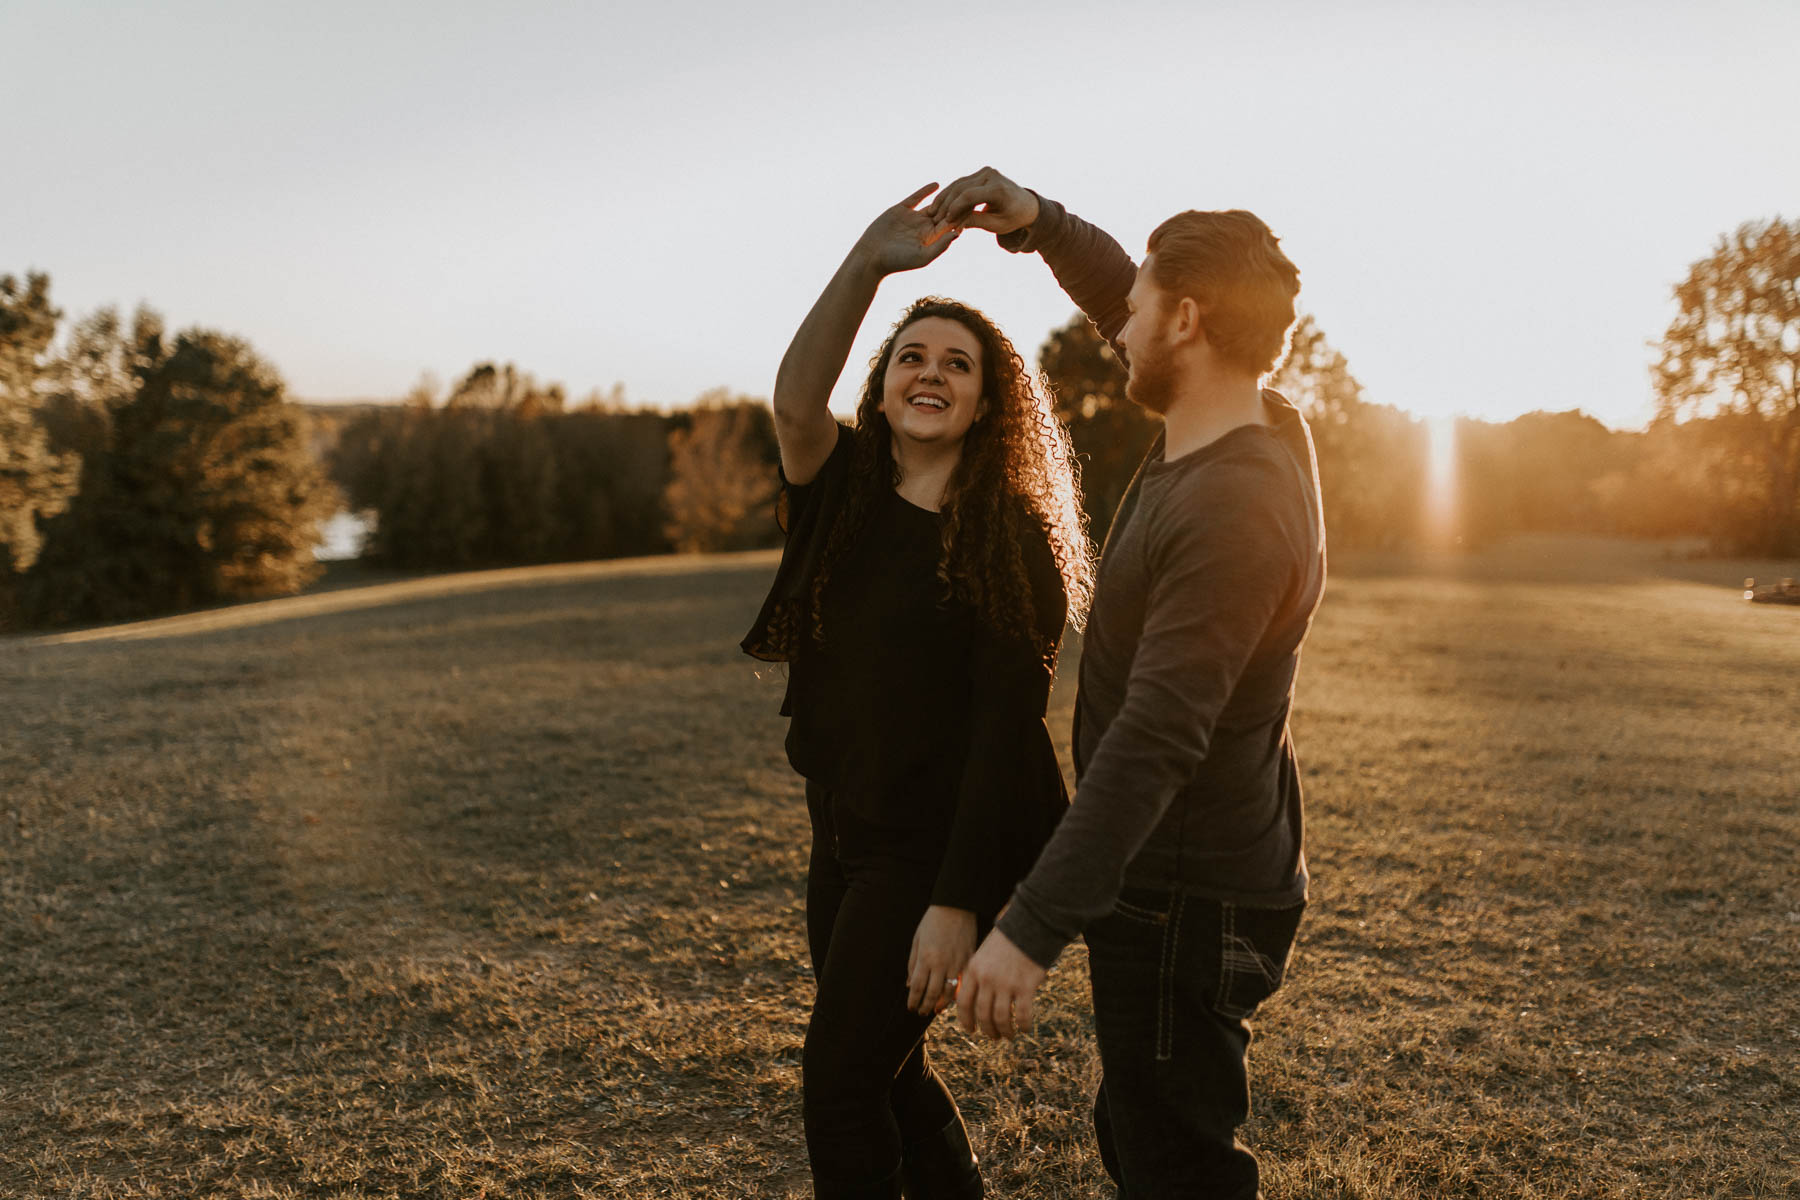 couple dancing and being playful in a field